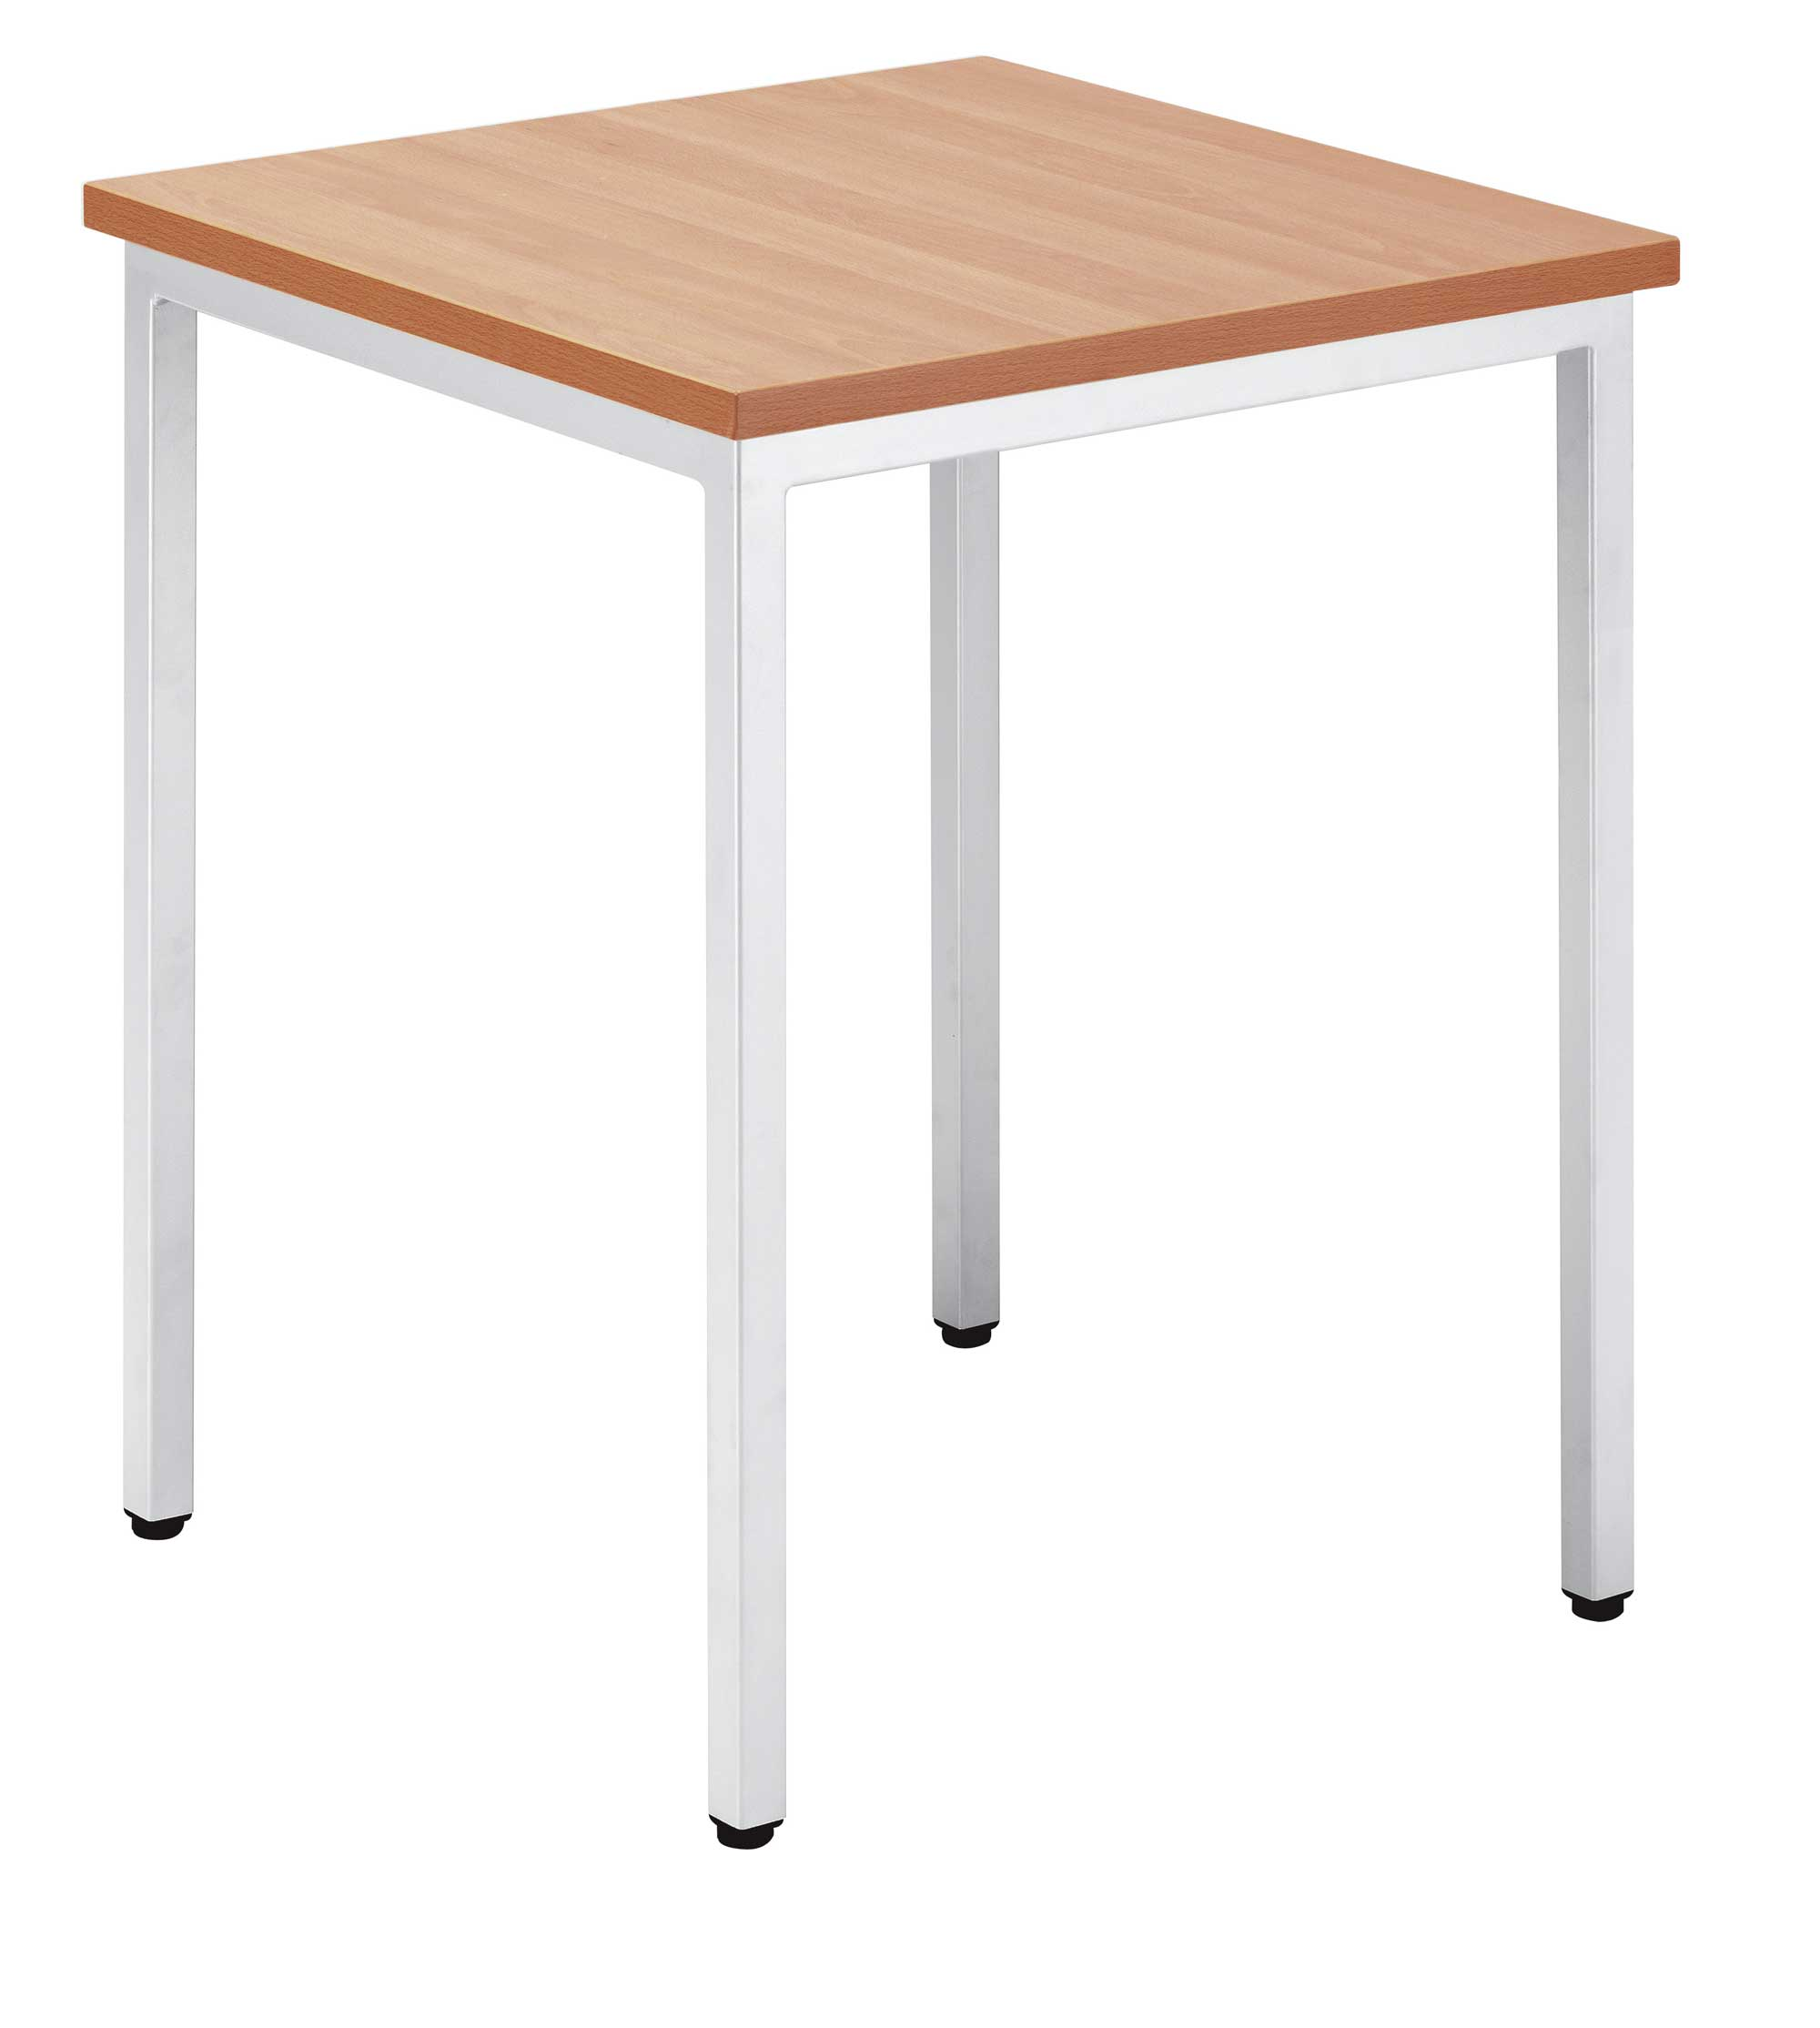 Small Multipurpose Wooden Folding Desk